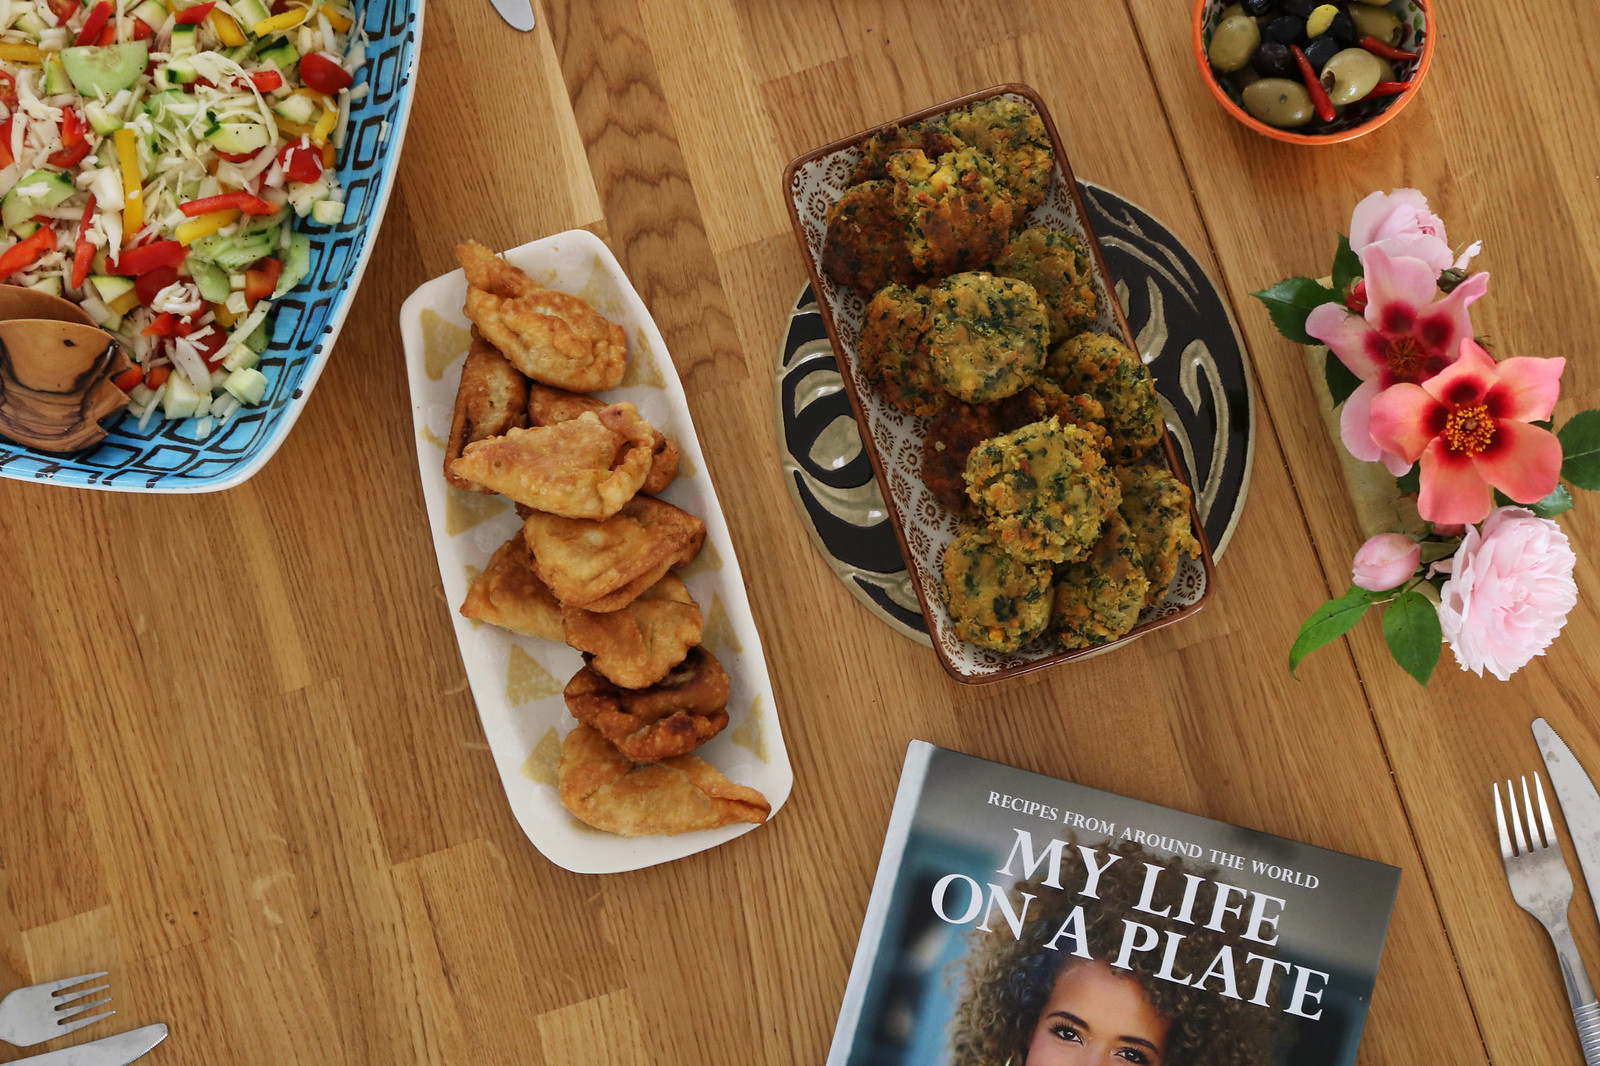 My Life On A Plate Review